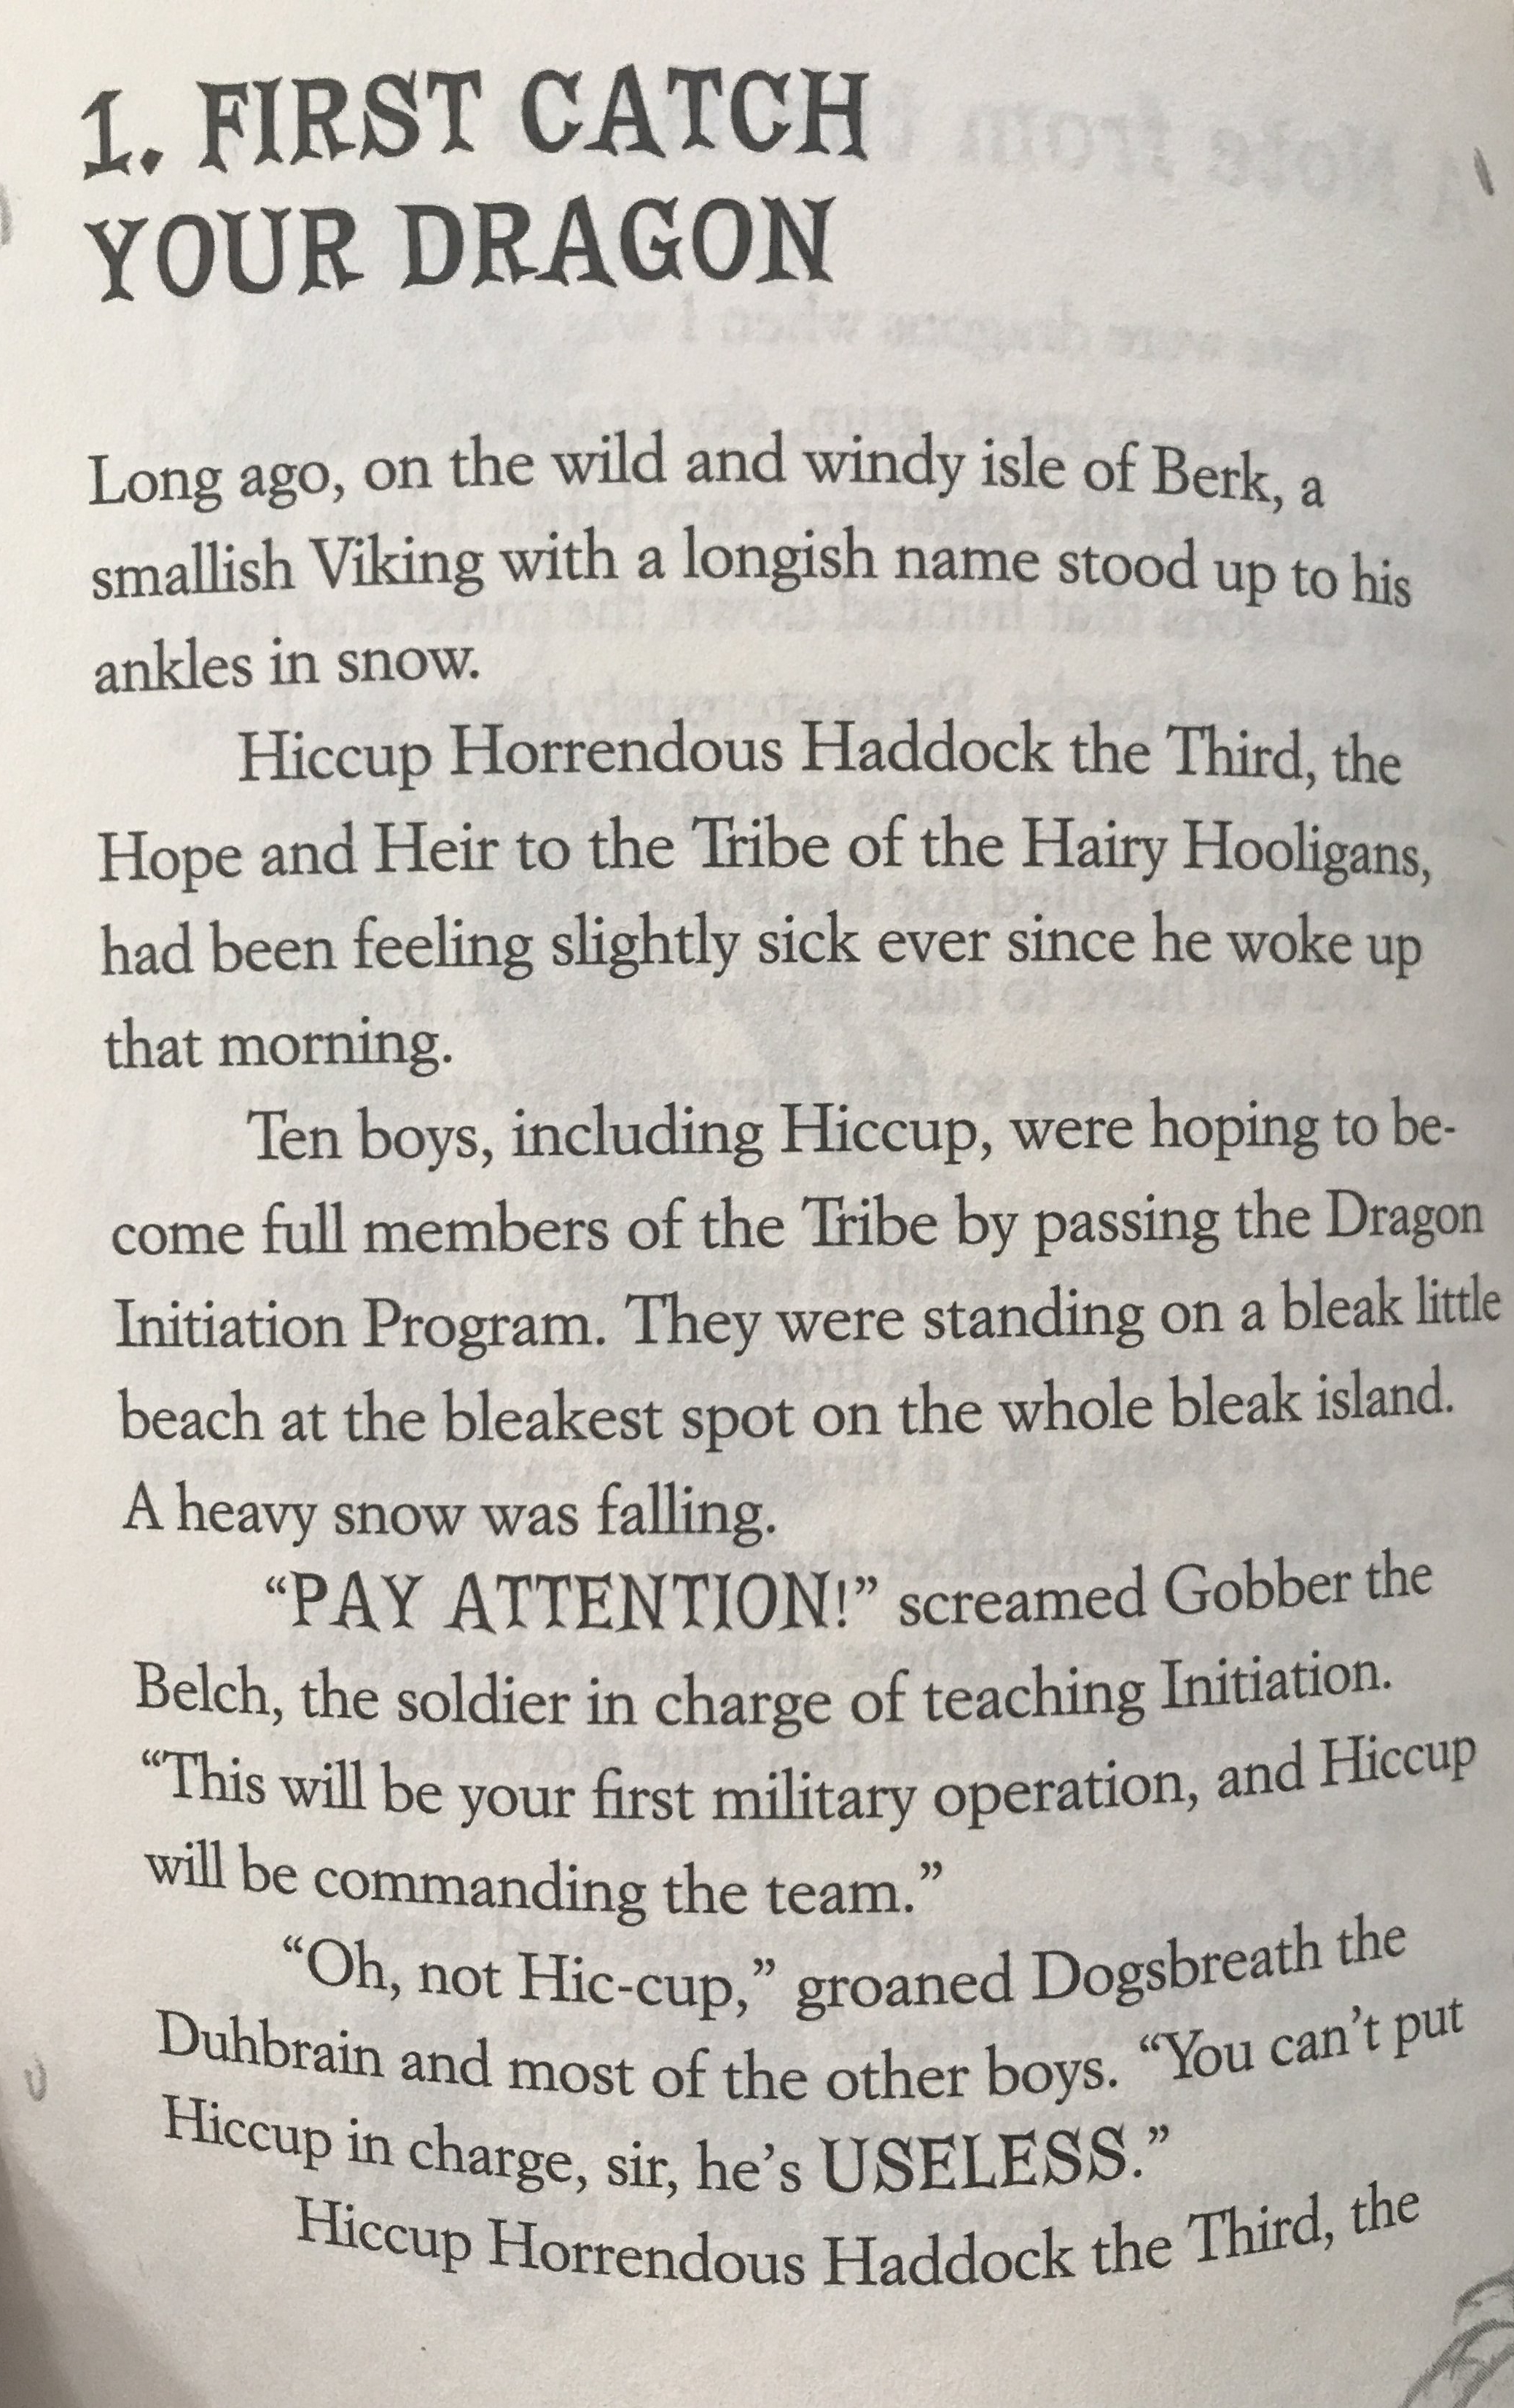 How to Train Your Dragon Excerpt4.JPG